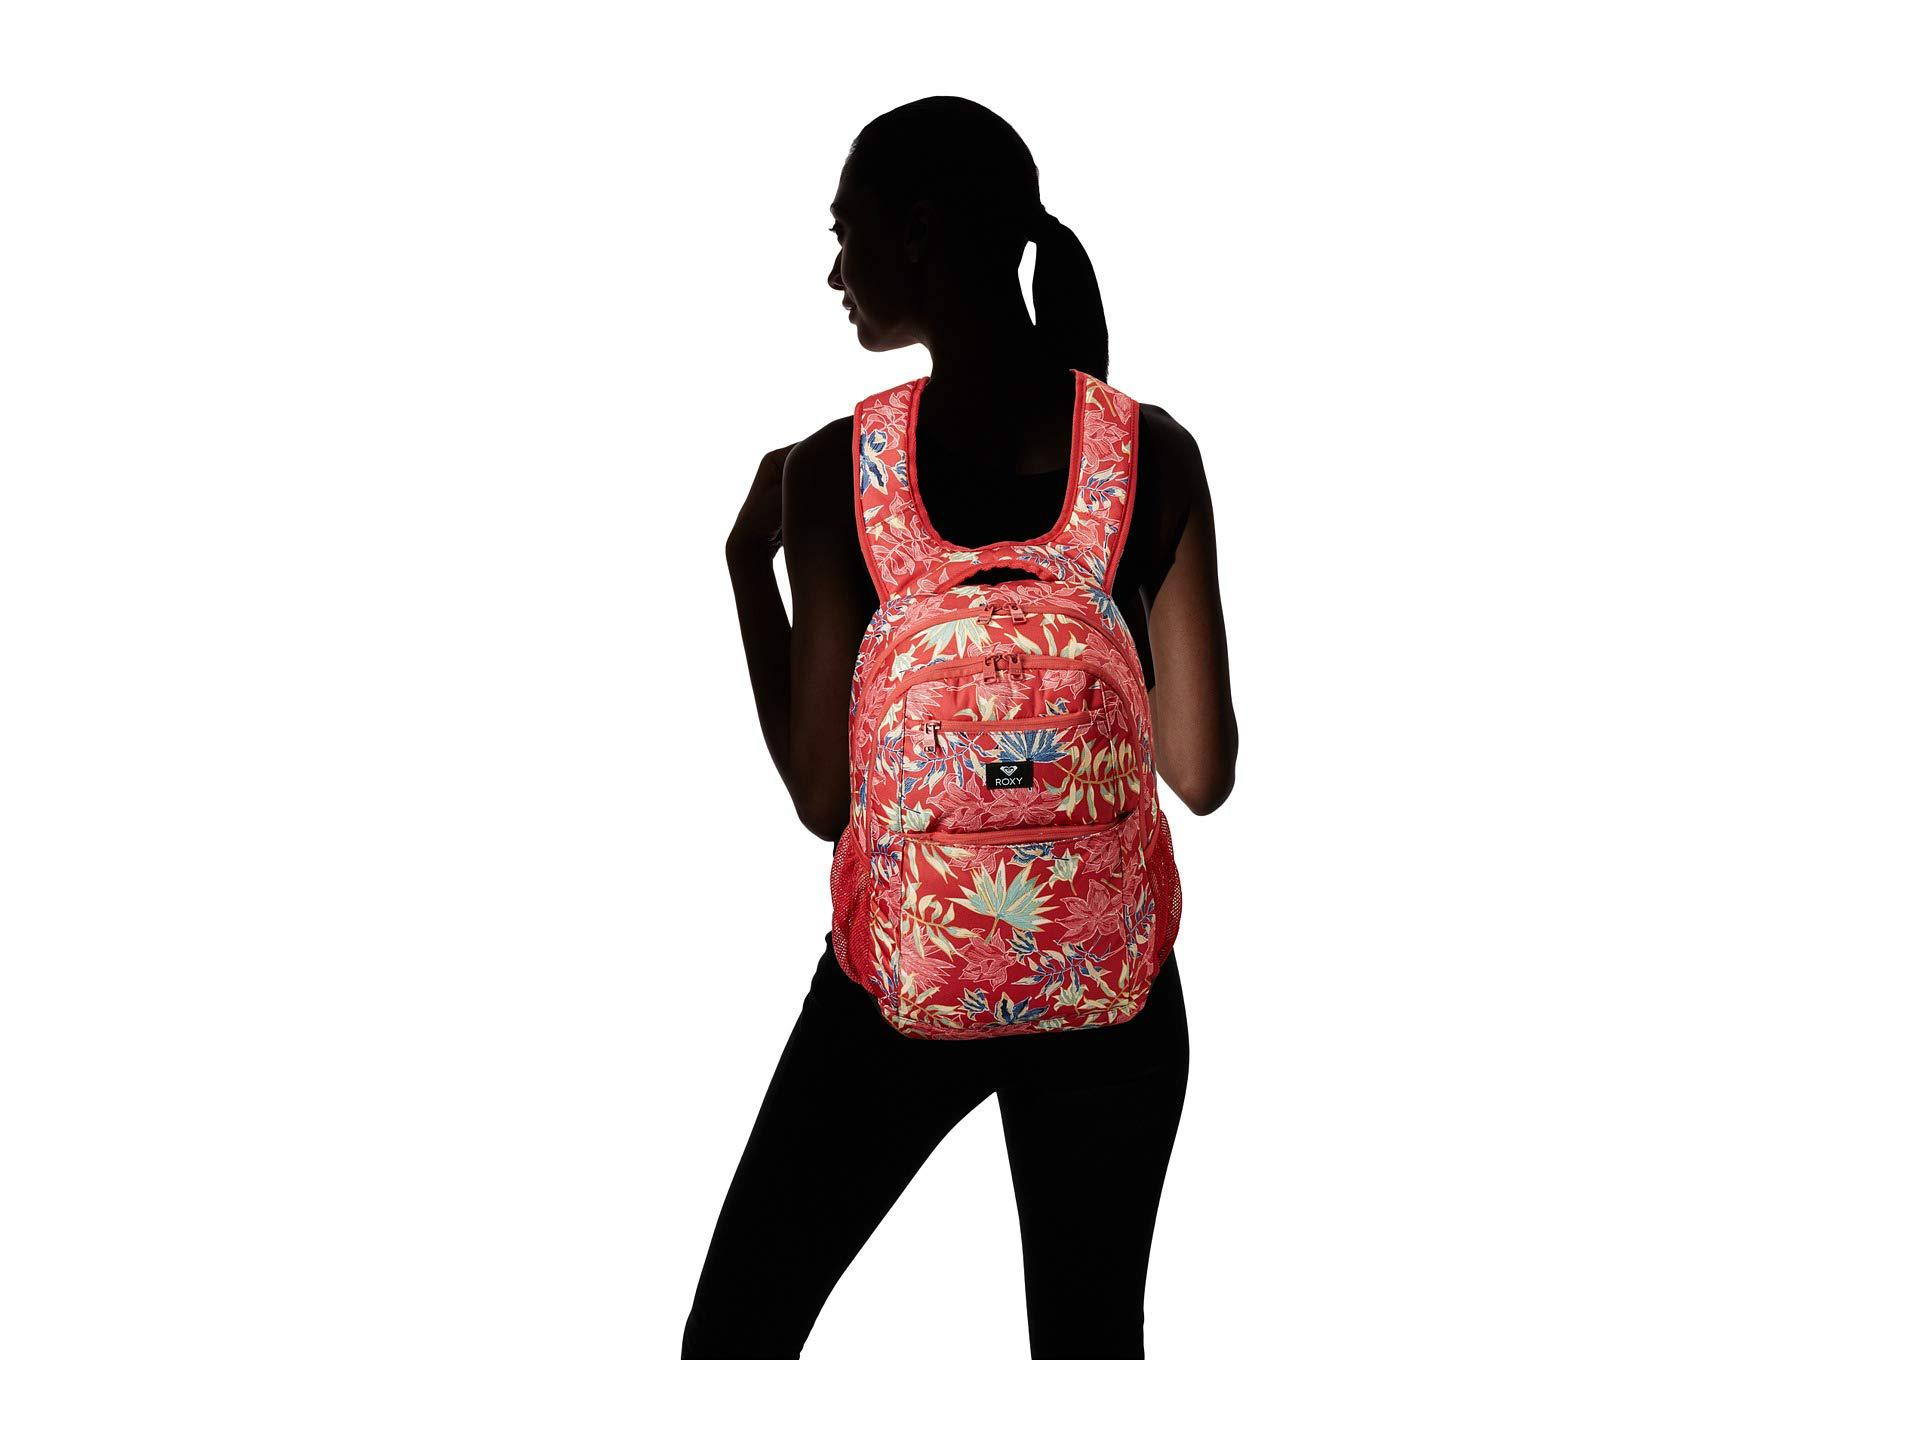 e8c33e74edd Lyst - Roxy Here You Are Backpack in Red - Save 33%